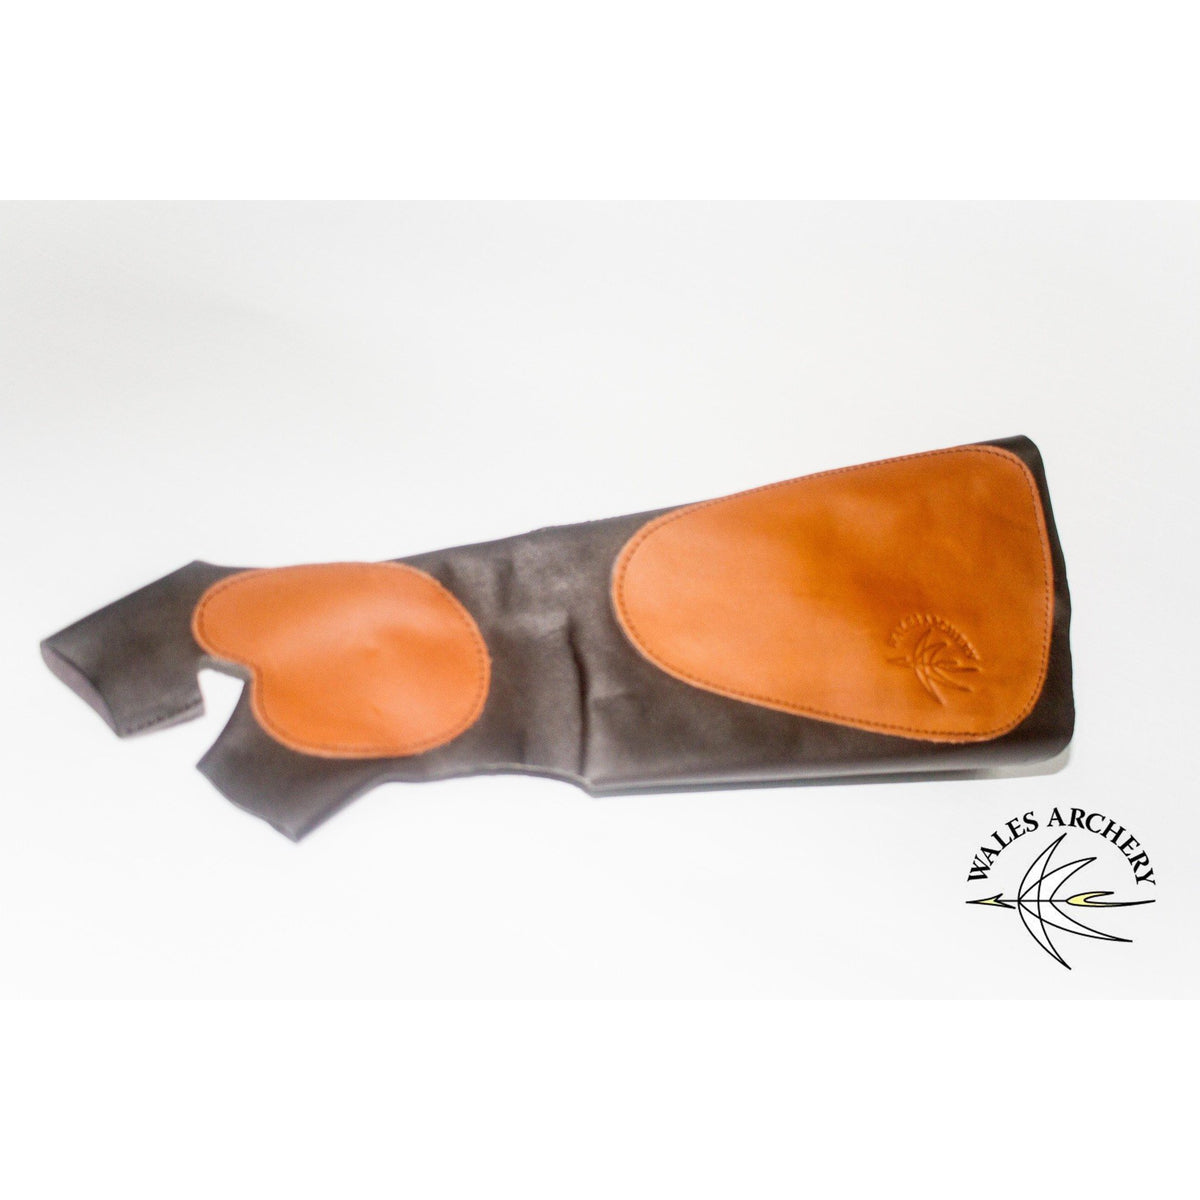 WAS Traditional Leather Armguard combined with Hand Glove